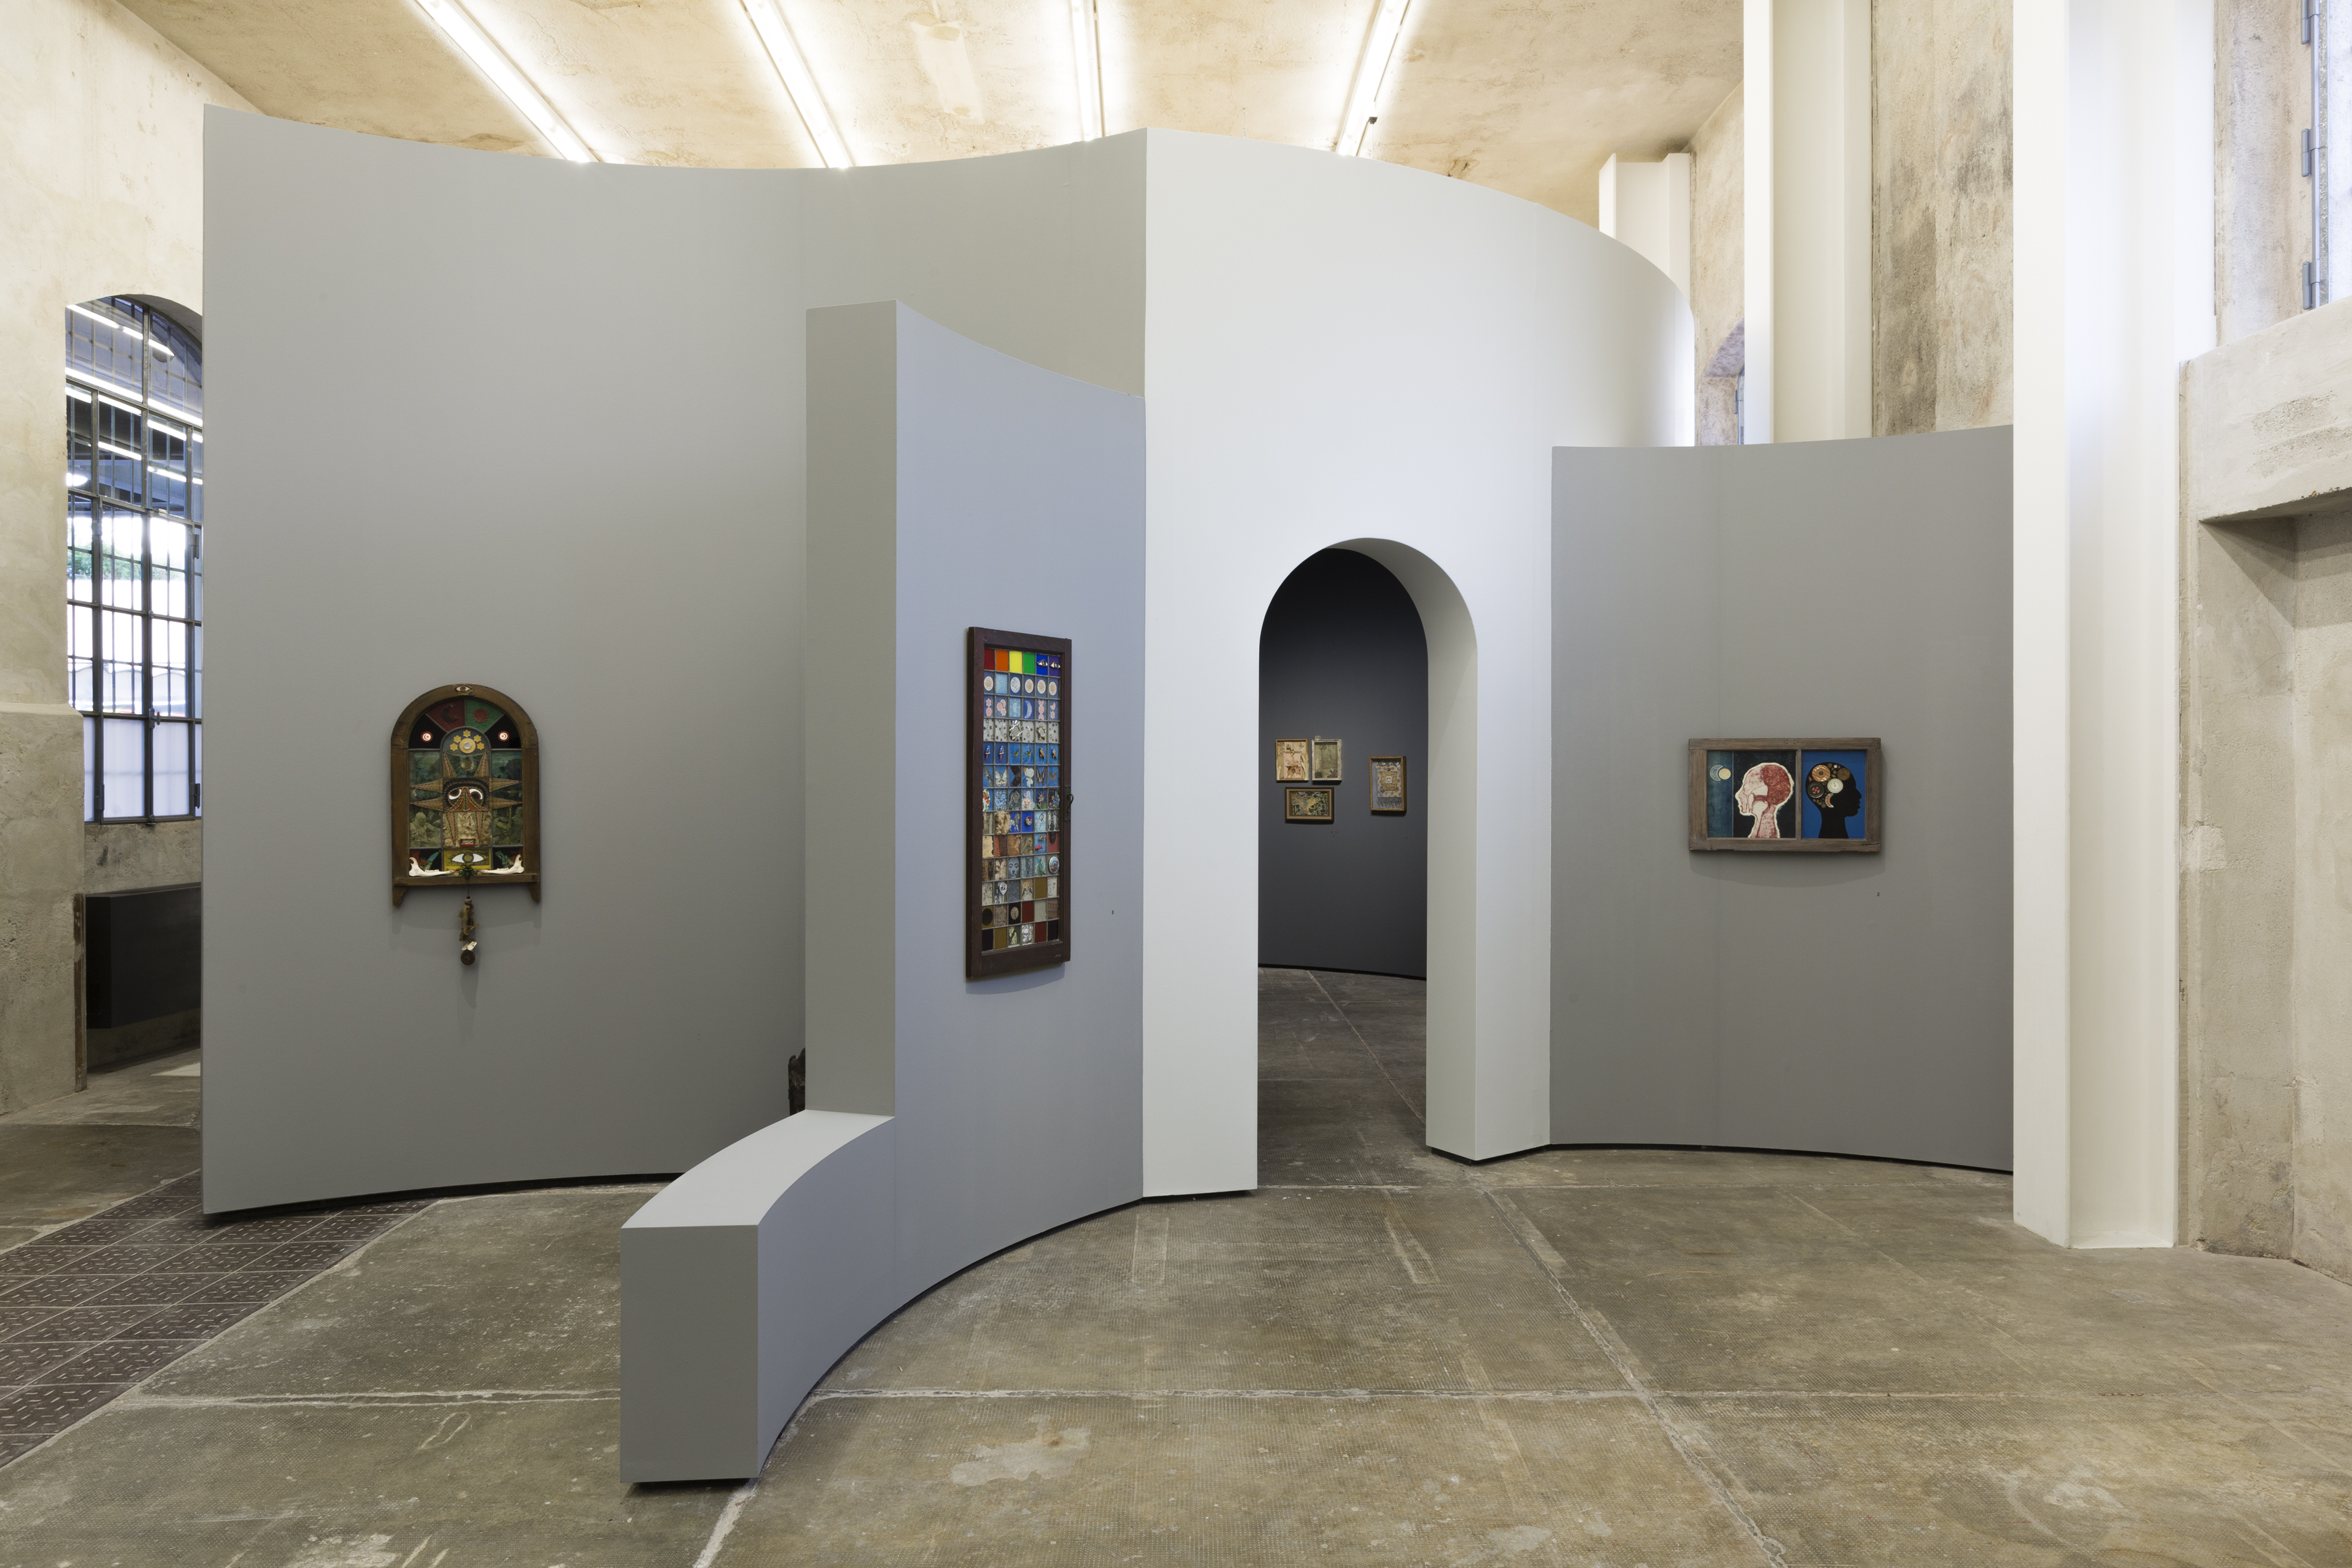 Betye Saar: Uneasy Dancer. Immagine della mostra. Da sinistra a destra: Ten Mojo Secrets, 1972, Mystic Window for the Universe, 1972, The Phrenologer's Window_II, 1966. Photo Roberto Marossi. Courtesy Fondazione Prada